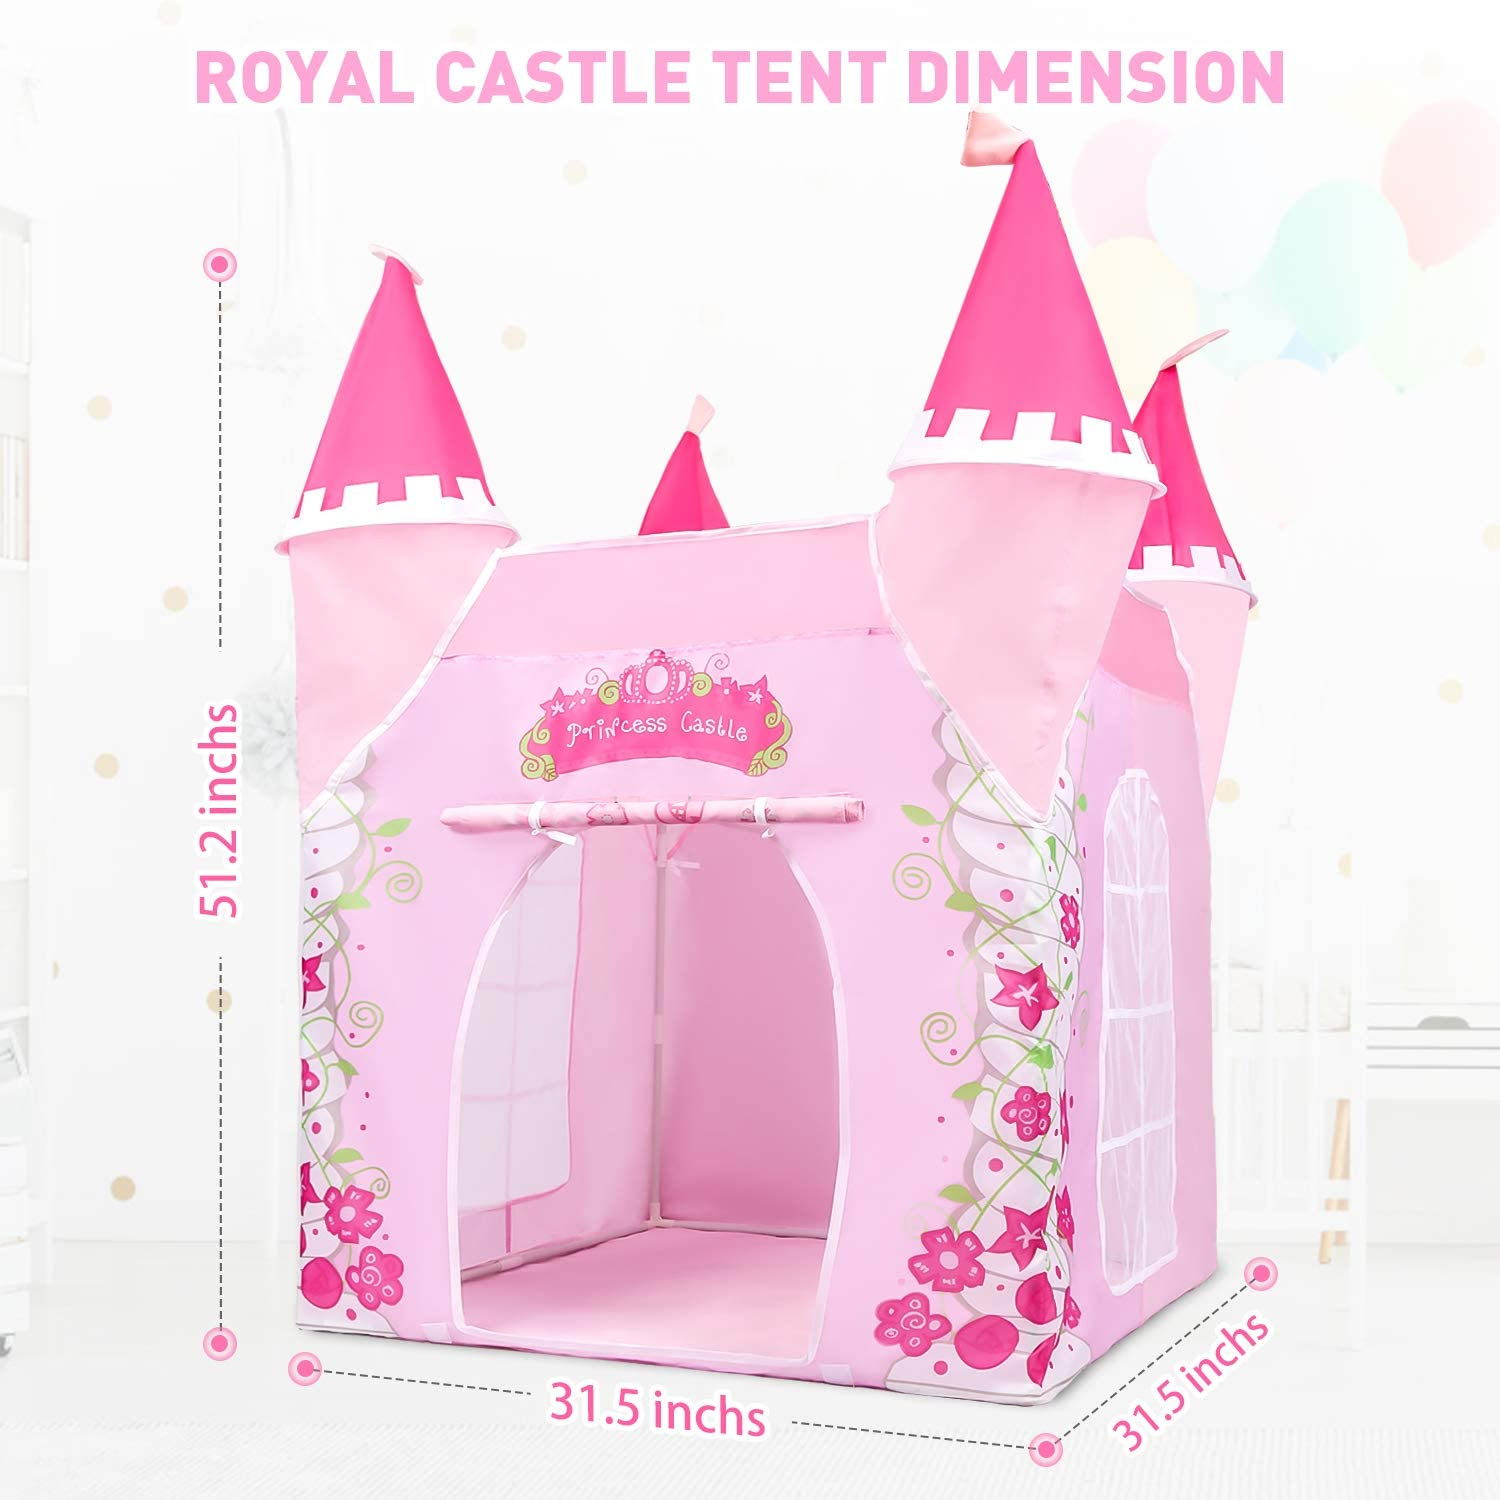 Mitcien Princess Castle Play Tent for Girls Large Playhouse Play Tent with Royal Tea Party Toy for Little Girls Indoor and Outdoor Pretend Role-Play Game